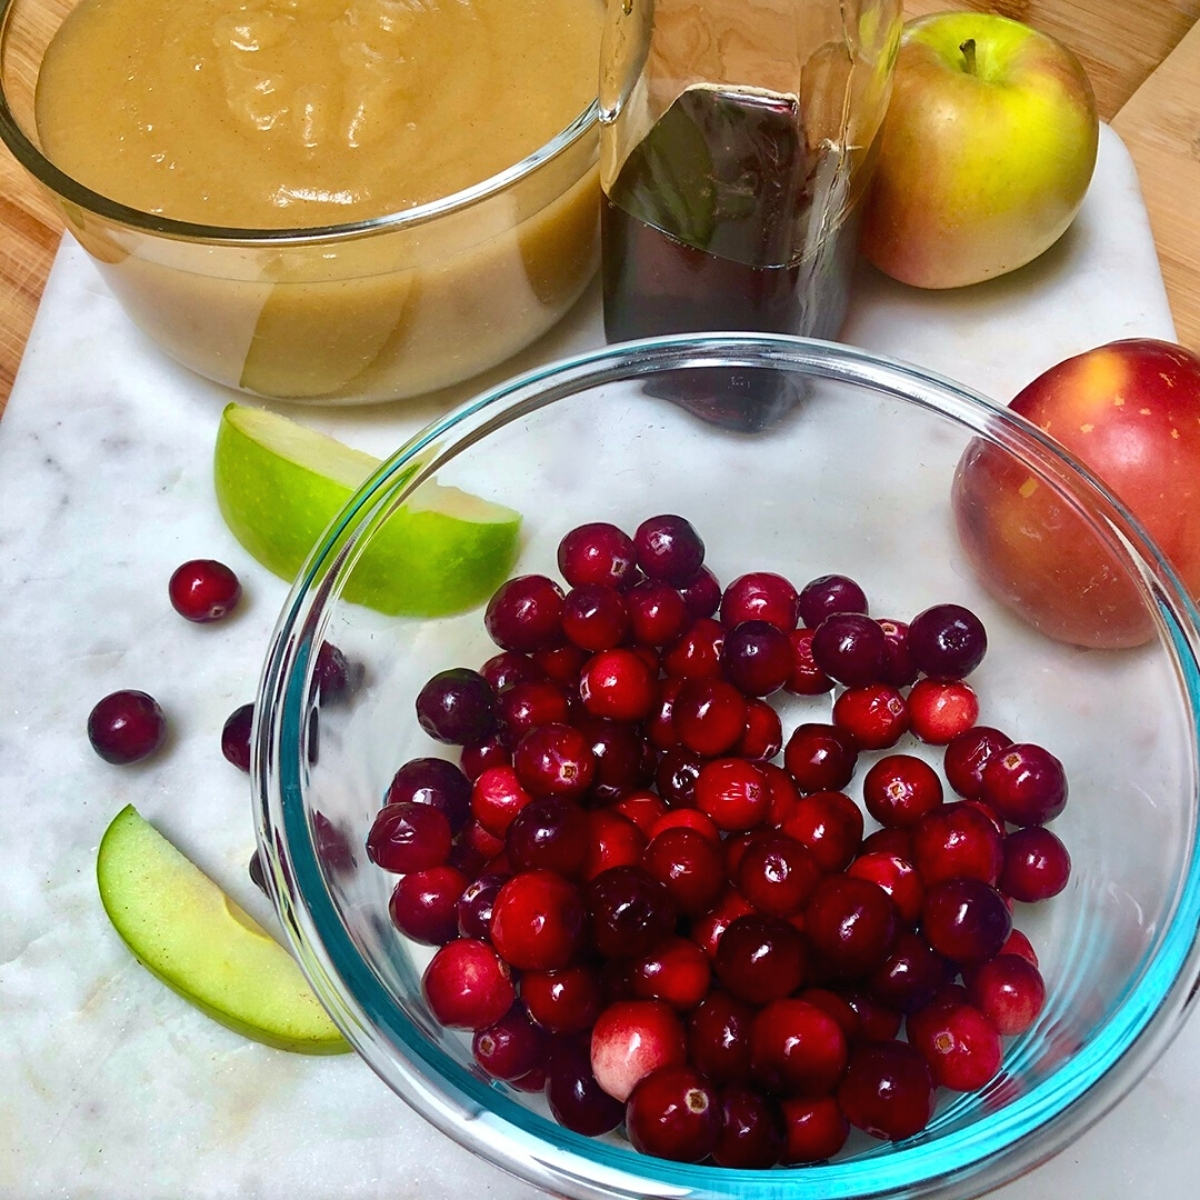 Ingredients for homemade cranberry applesauce.